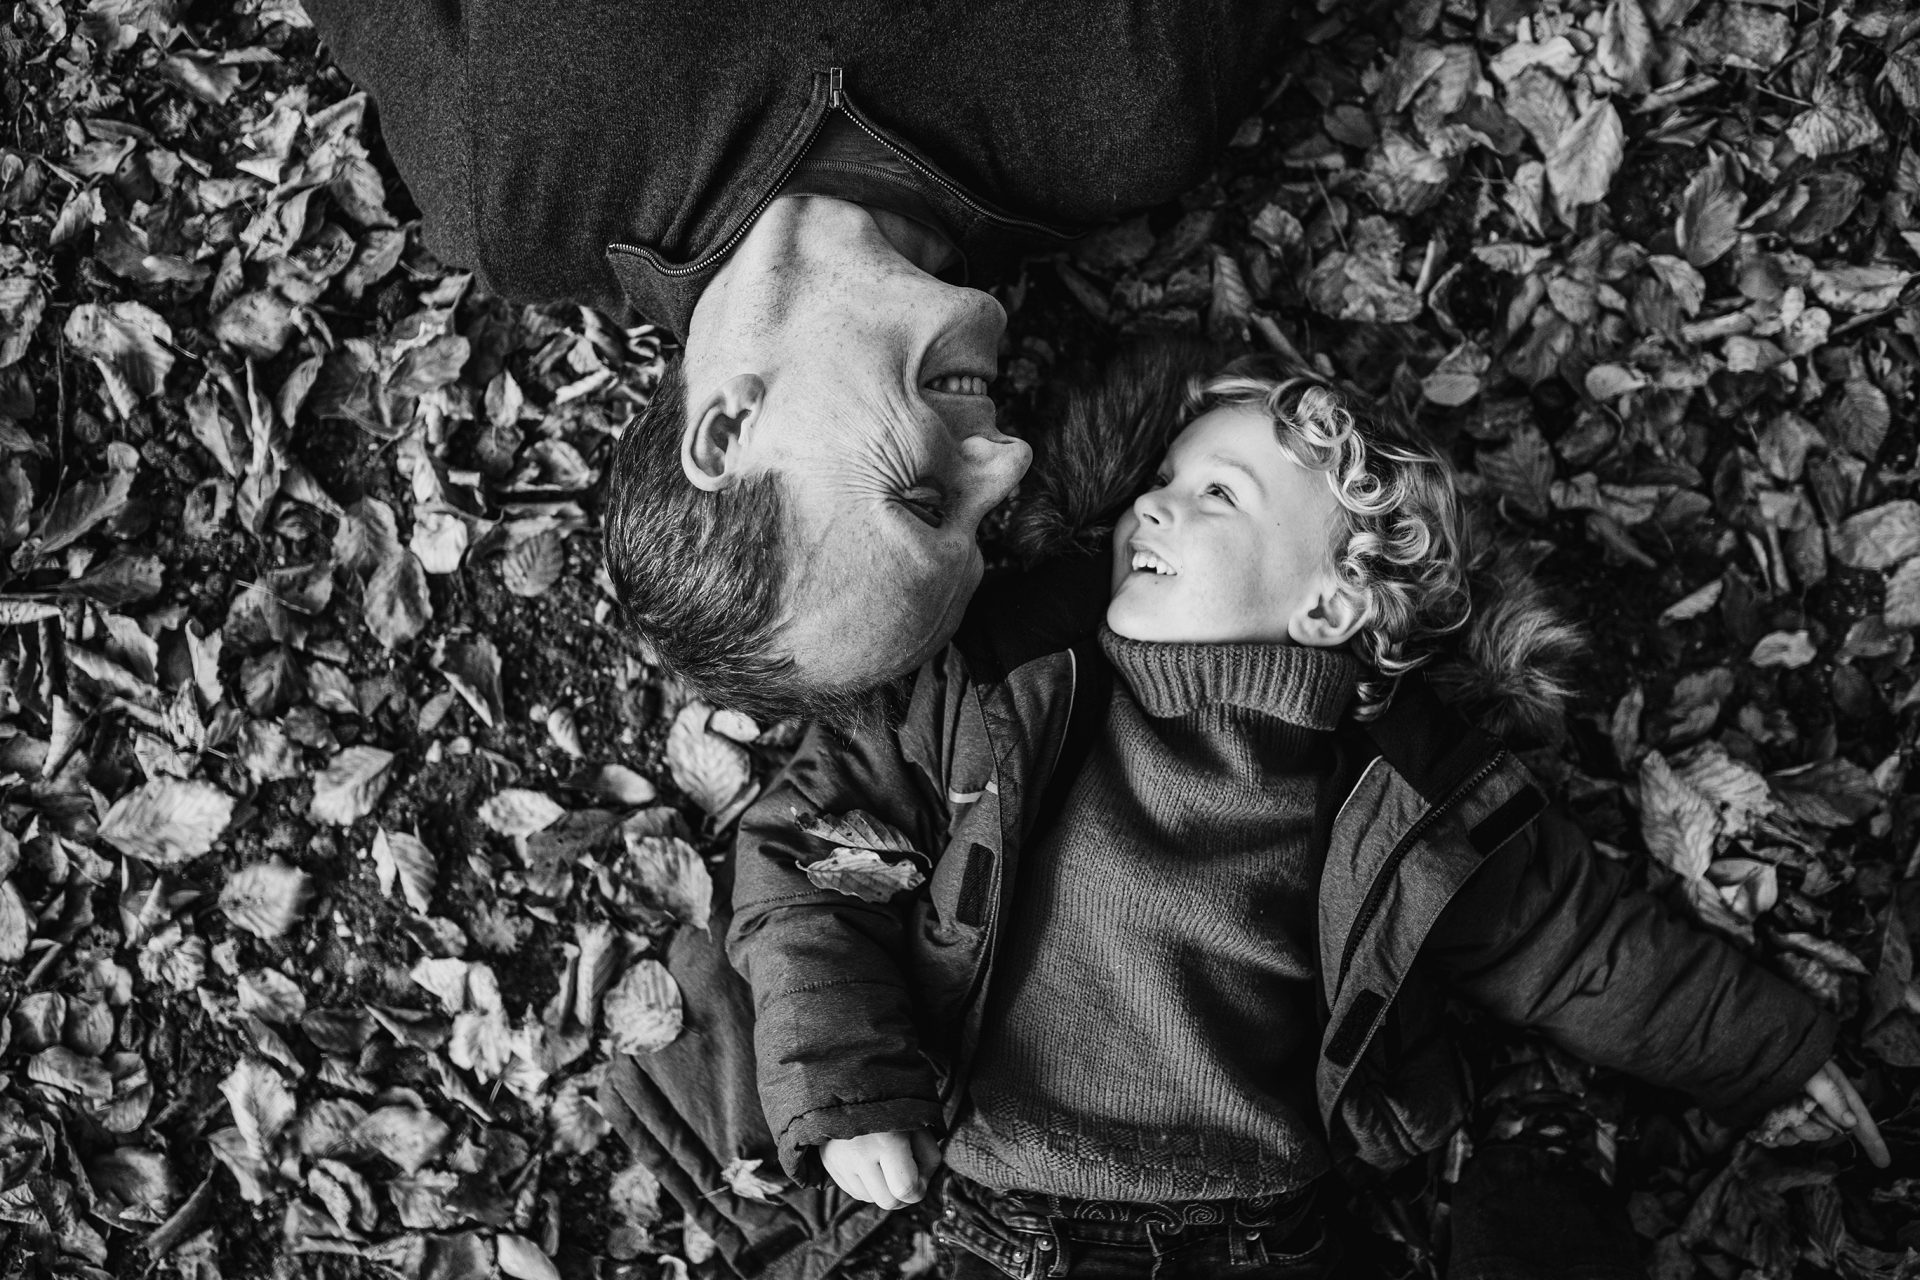 dad and son on the forest, lying on the leaves, looking at each other upside down. Black and white picture. Family photo shoot Leiden, Netherlands